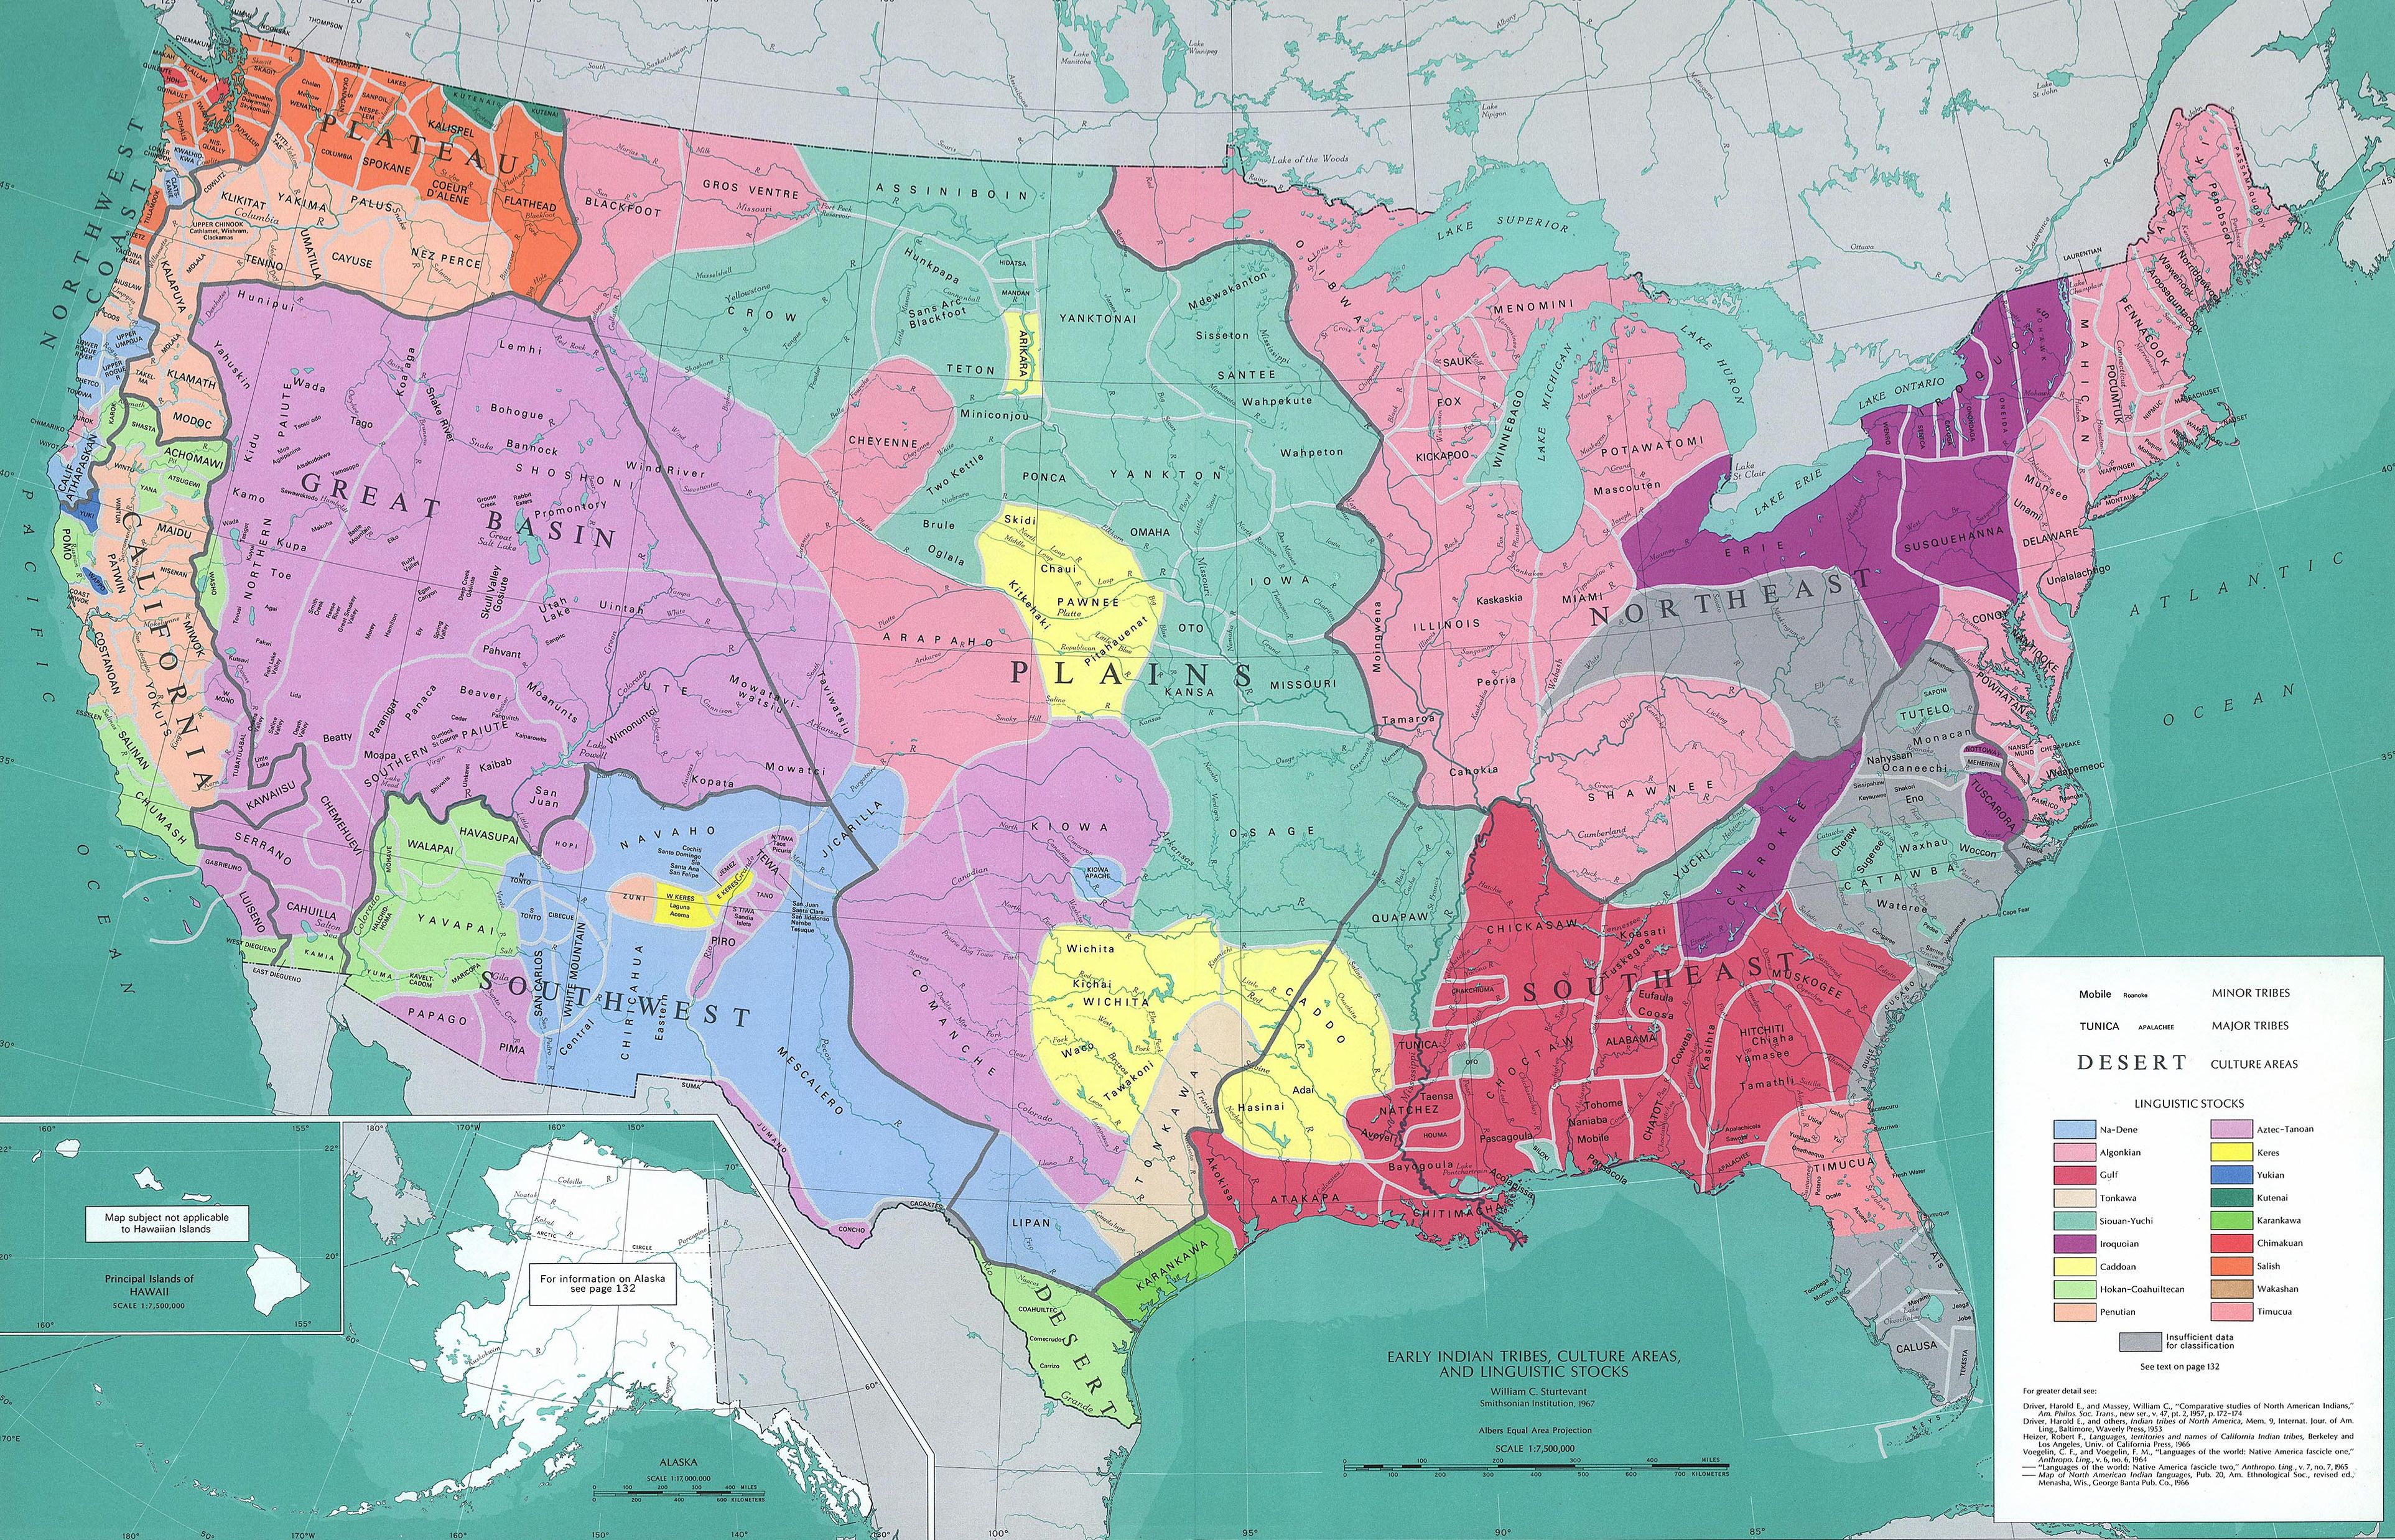 Early Indian Tribes, Culture Areas, and Linguistic Stocks